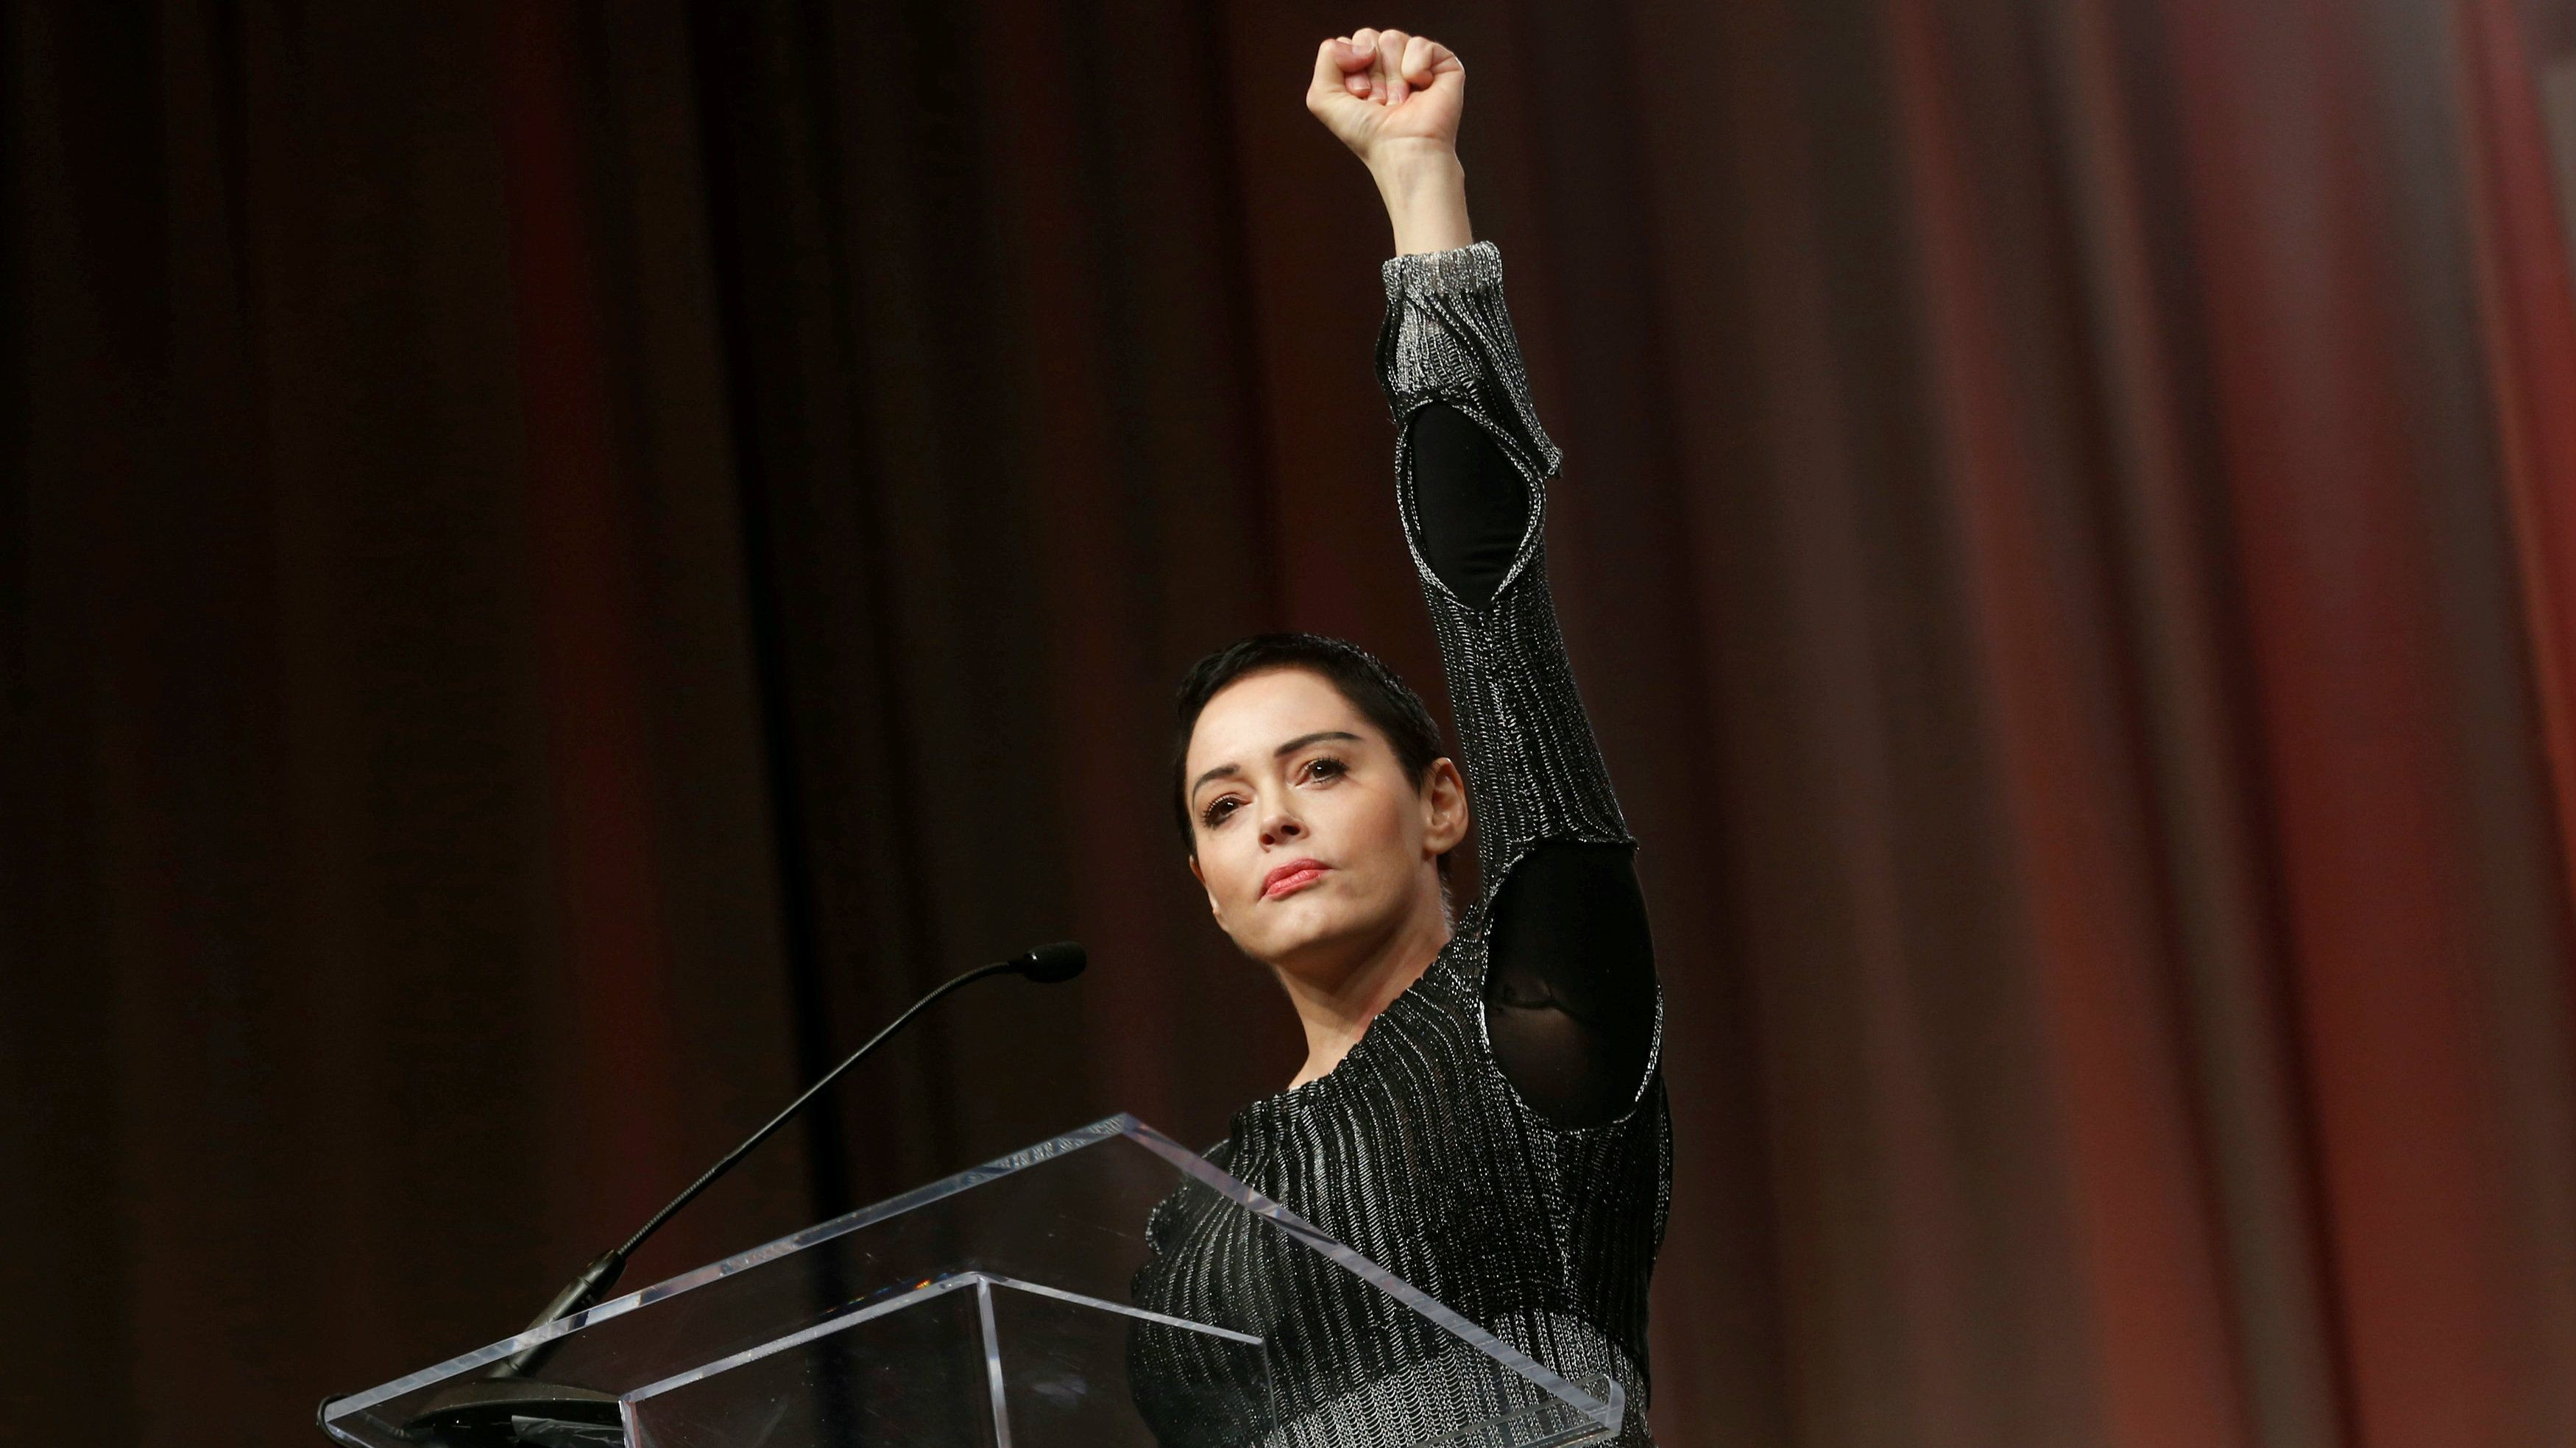 rosemcgowan-silence-breakers-time-person-of-the-year-2017-1.jpg